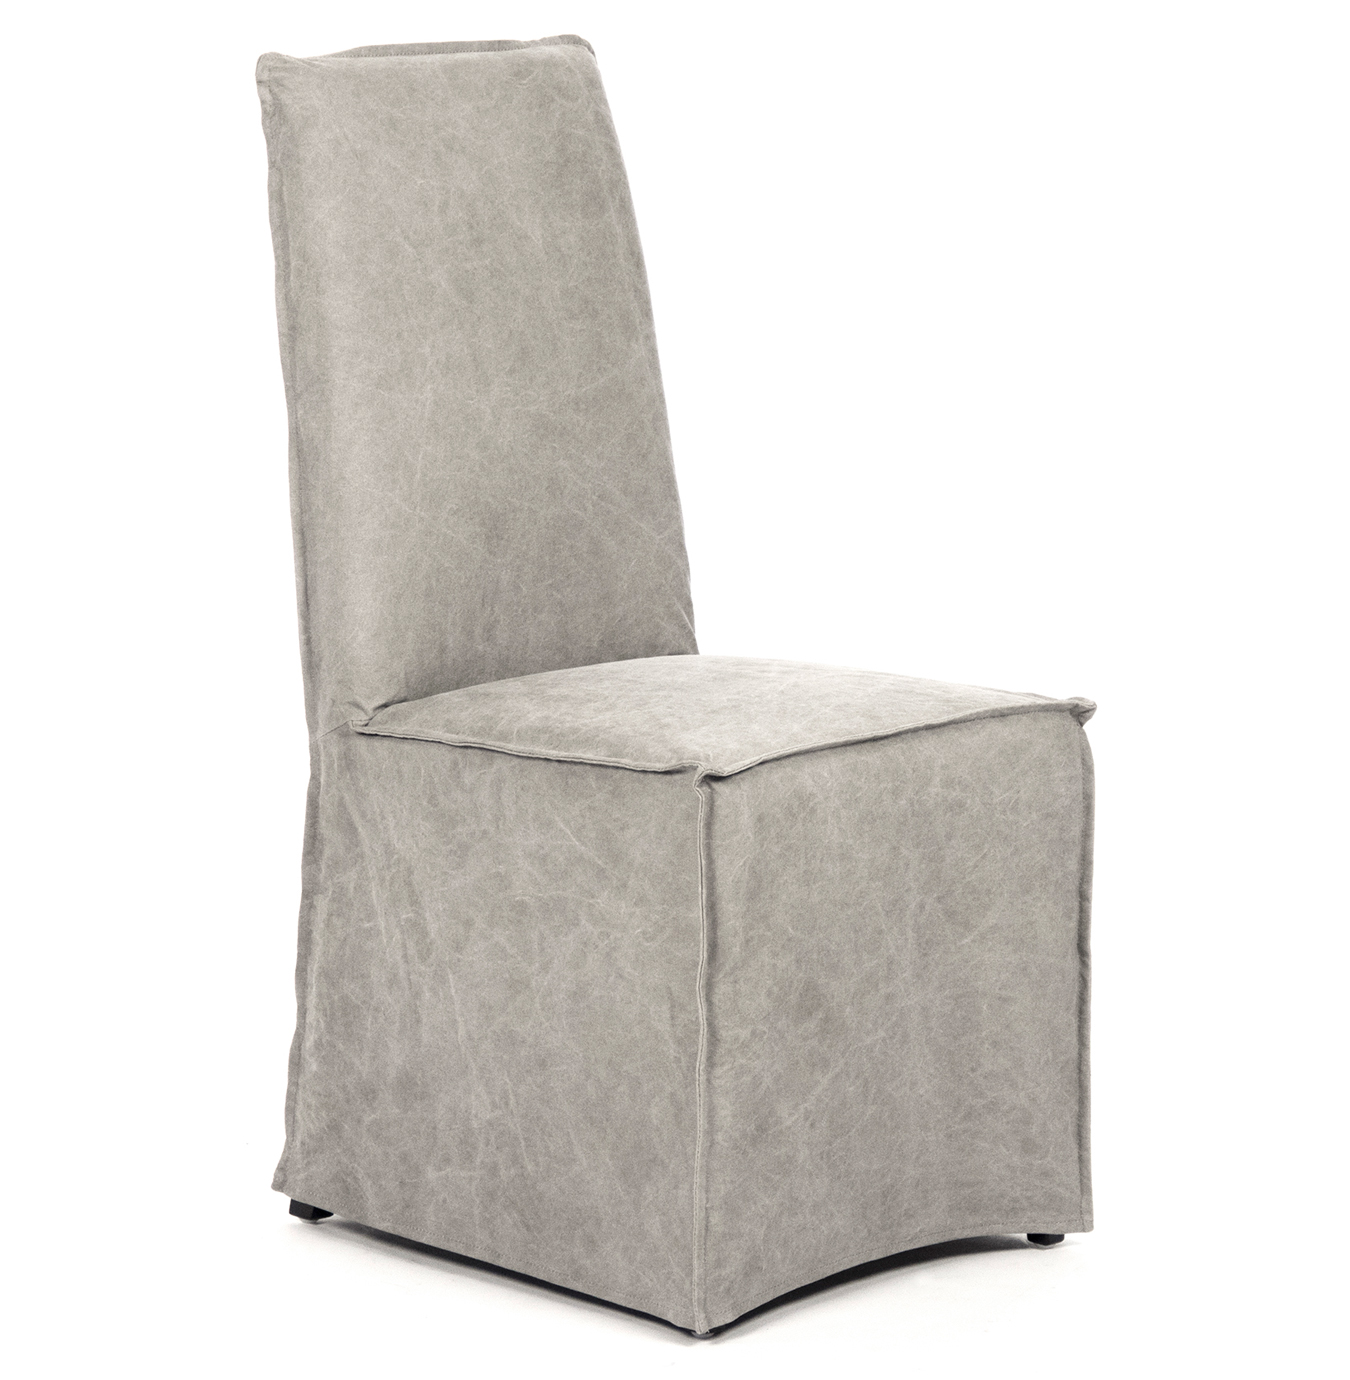 Calistoga Industrial Washed Canvas Distressed Grey Dining Chair